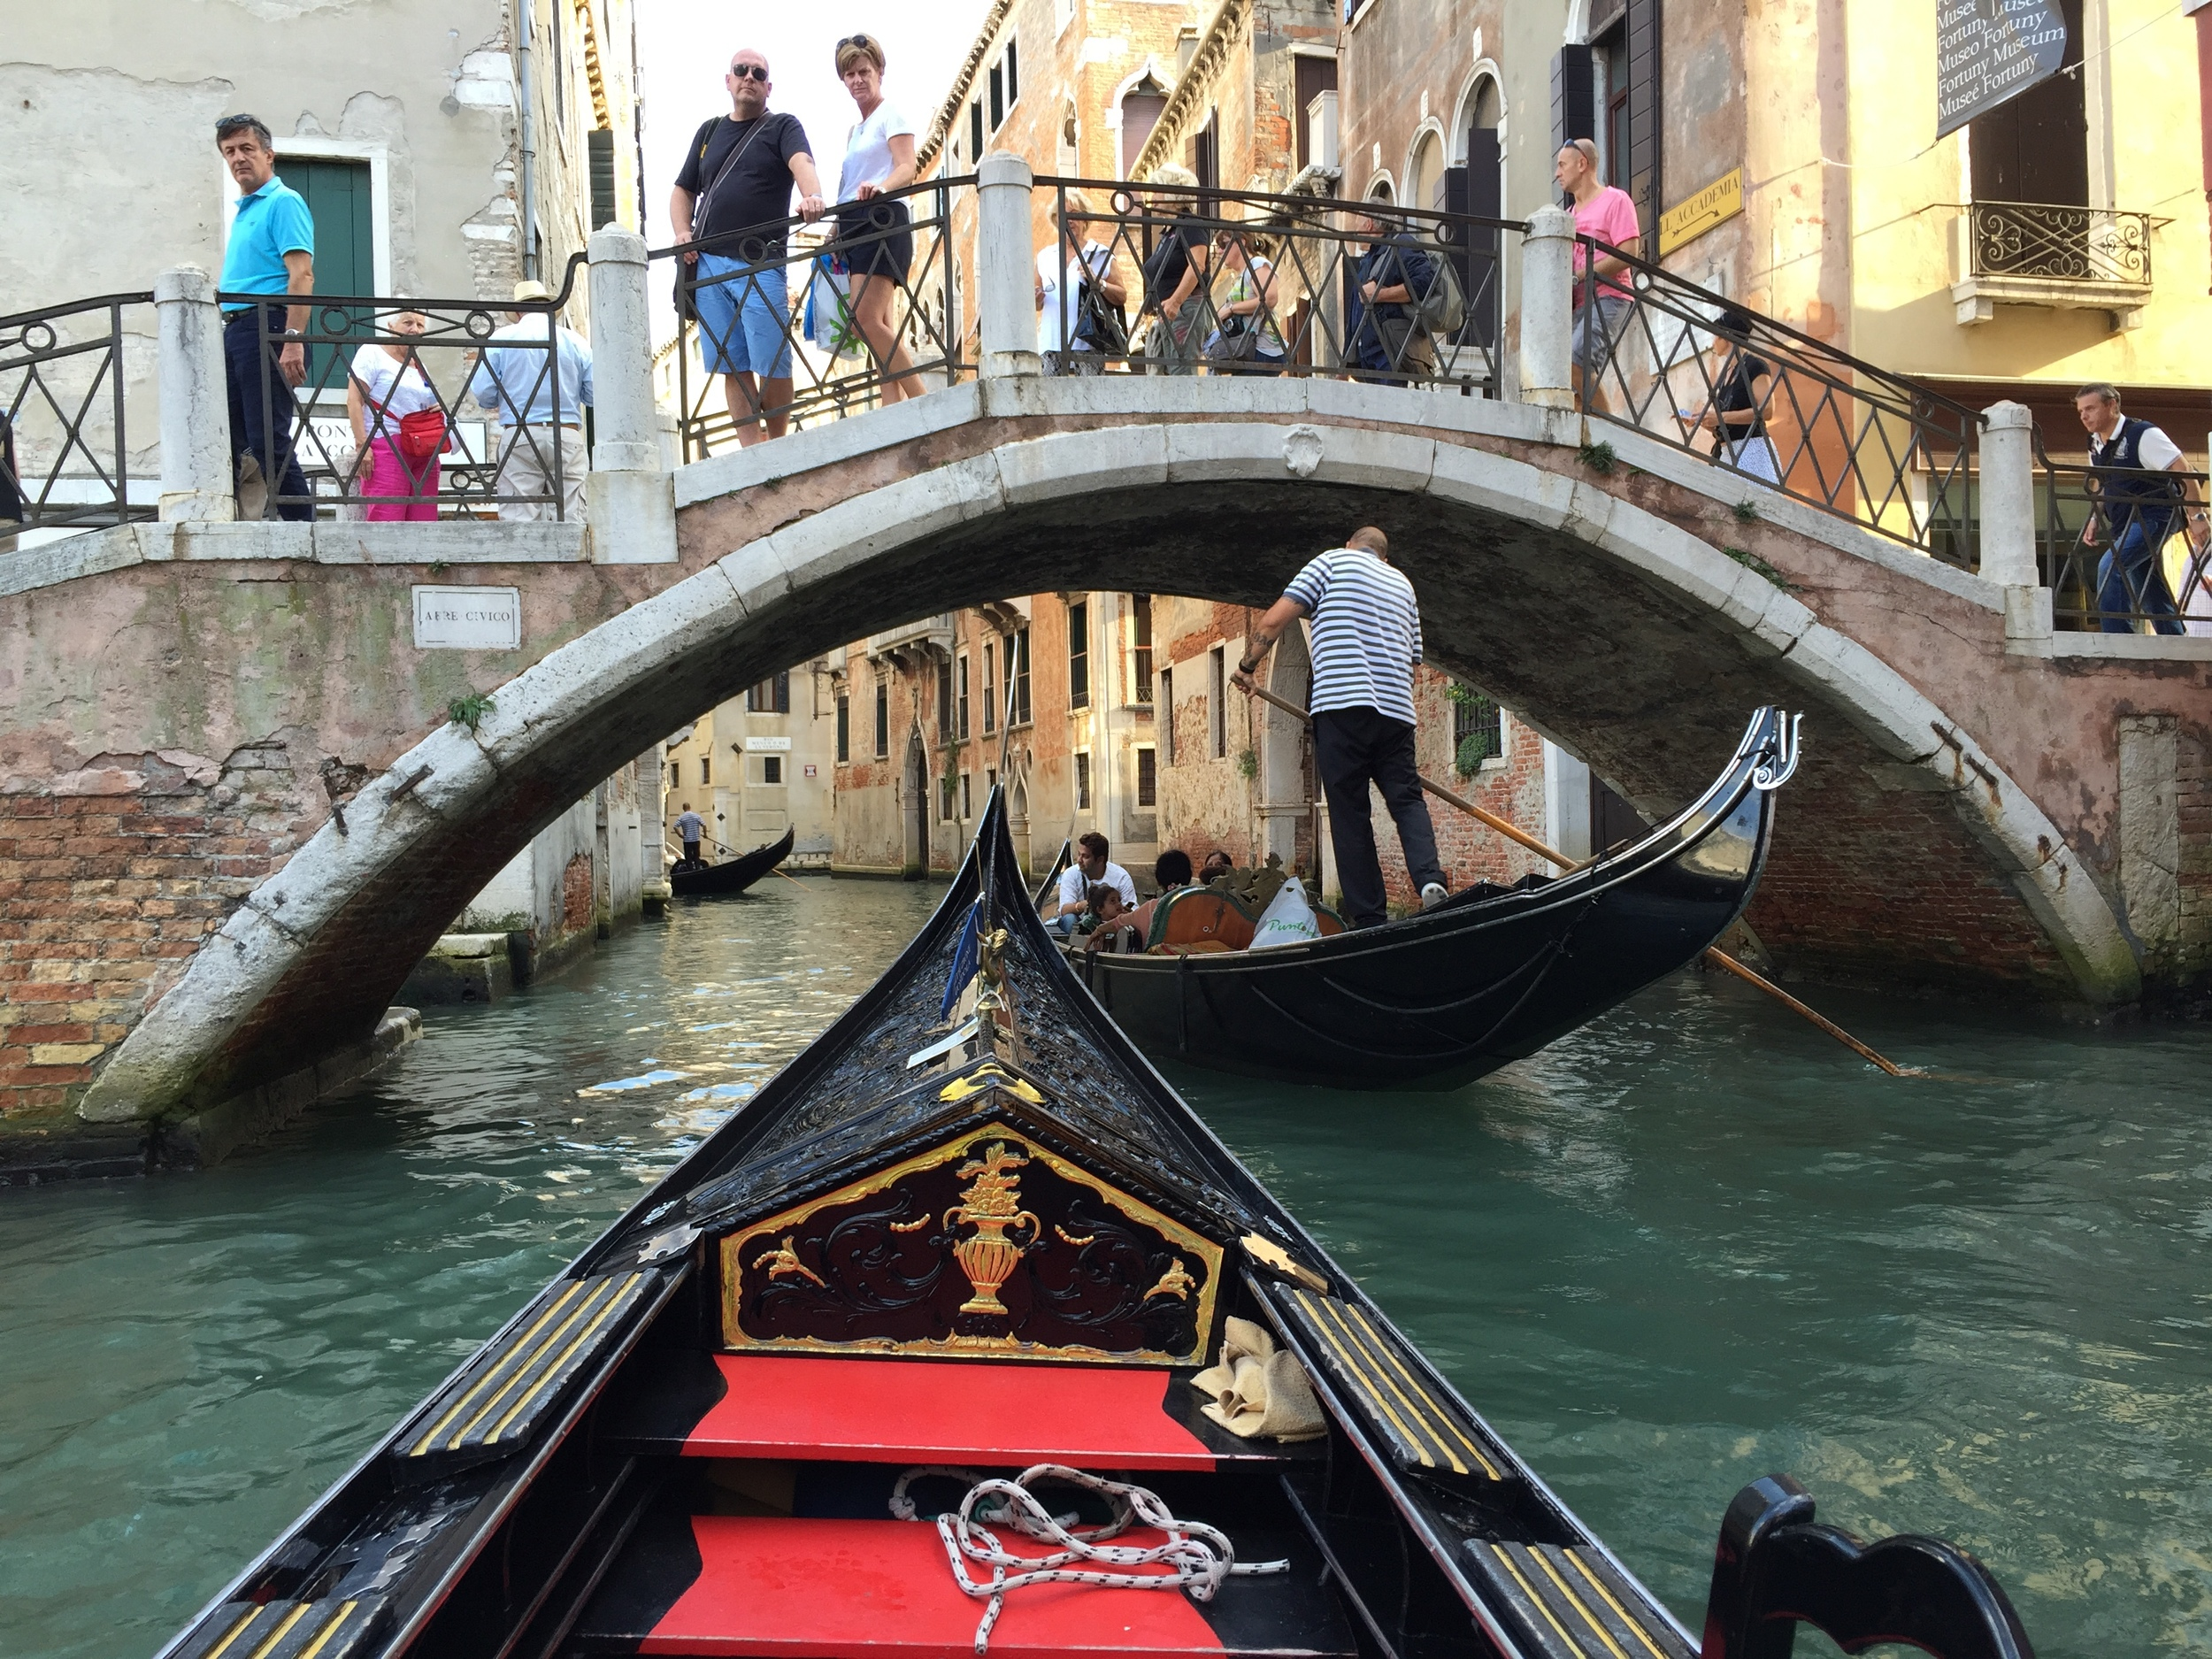 My view from the gondola as we turned from the Grand Canal